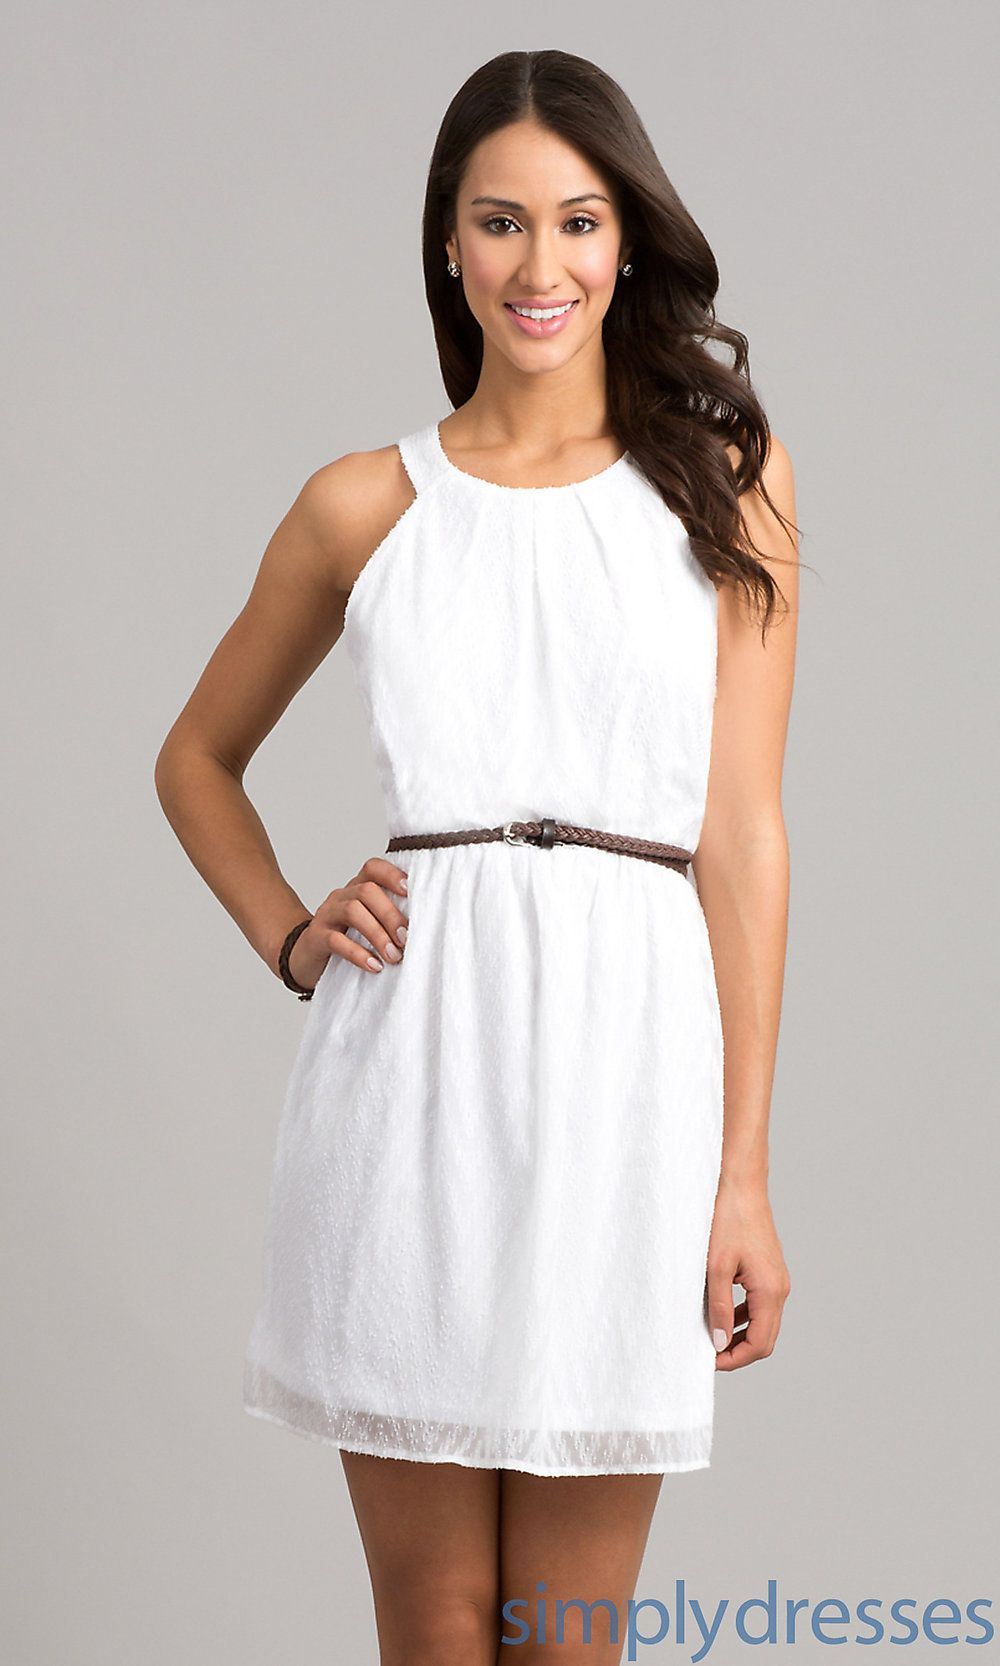 White Casual Graduation Dresses | Cool Casual Dresses | Pinterest ...